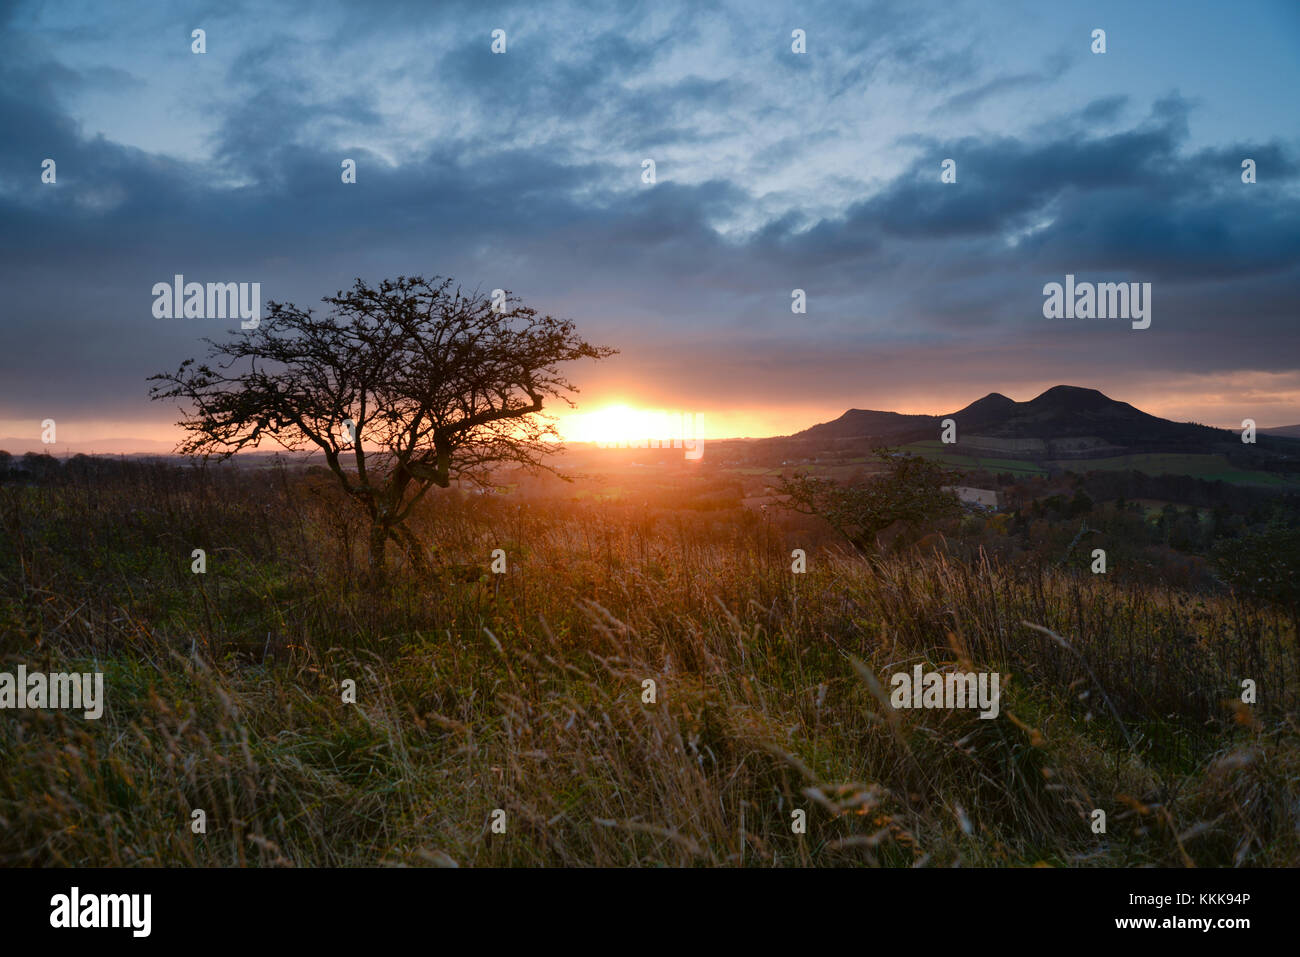 Scott's View in the Scottish Borders, overlooking the valley of the River Tweed, towards the Eildon Hills - Stock Image